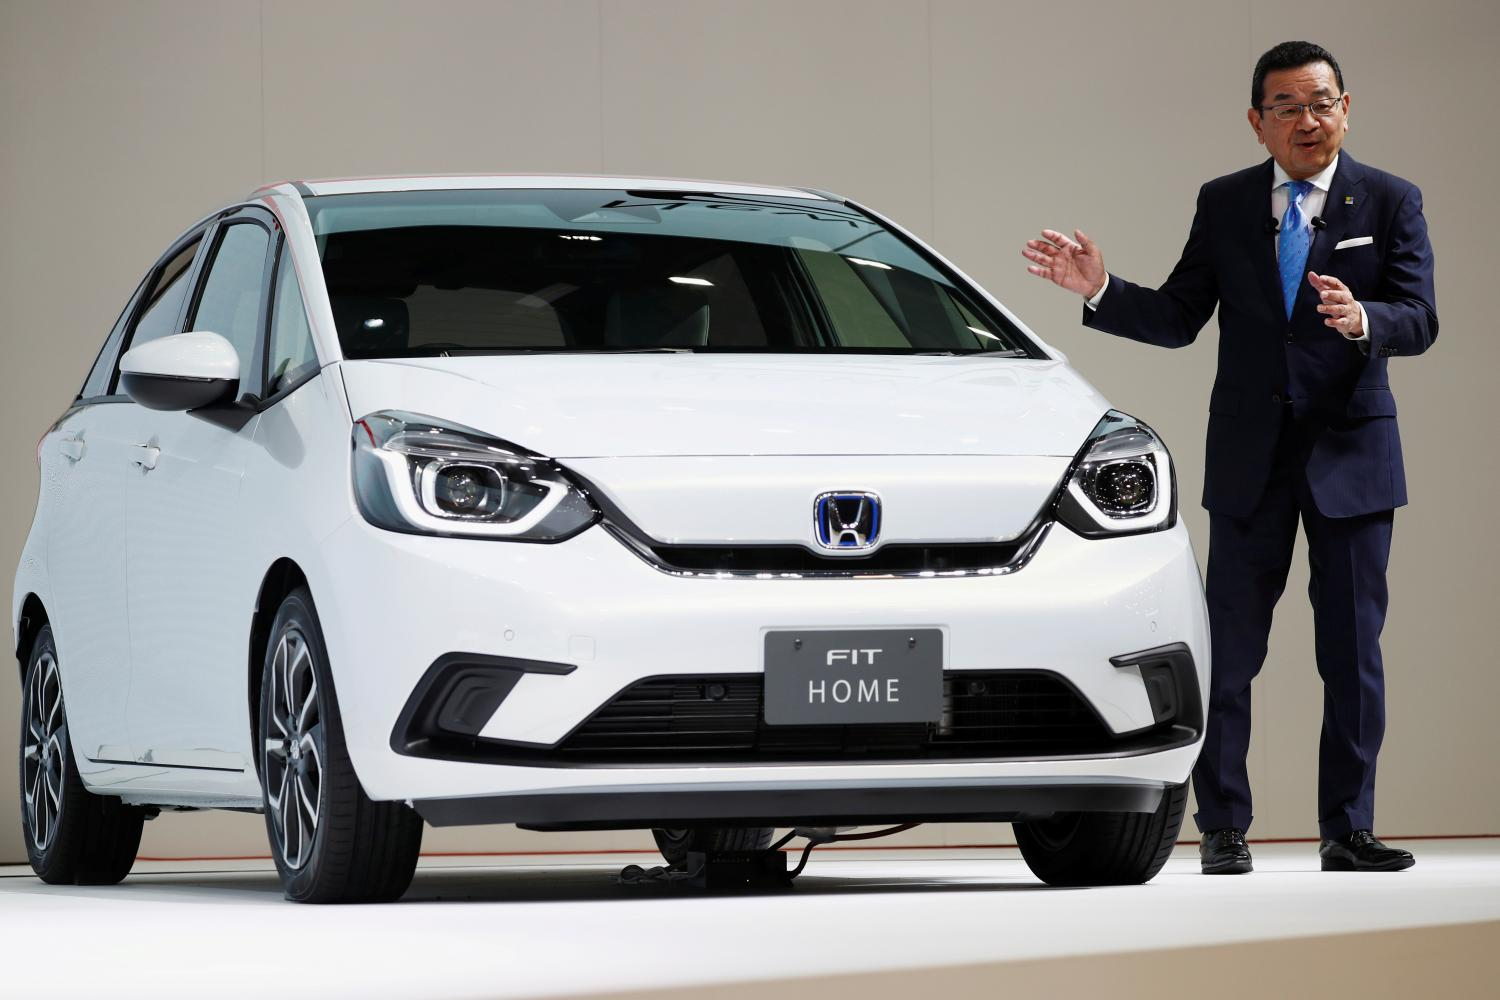 Takahiro Hachigo, president and CEO of Honda Motor Co, shows the new Honda Fit during the Tokyo Motor Show on Oc 23, 2019.(Reuters photo)